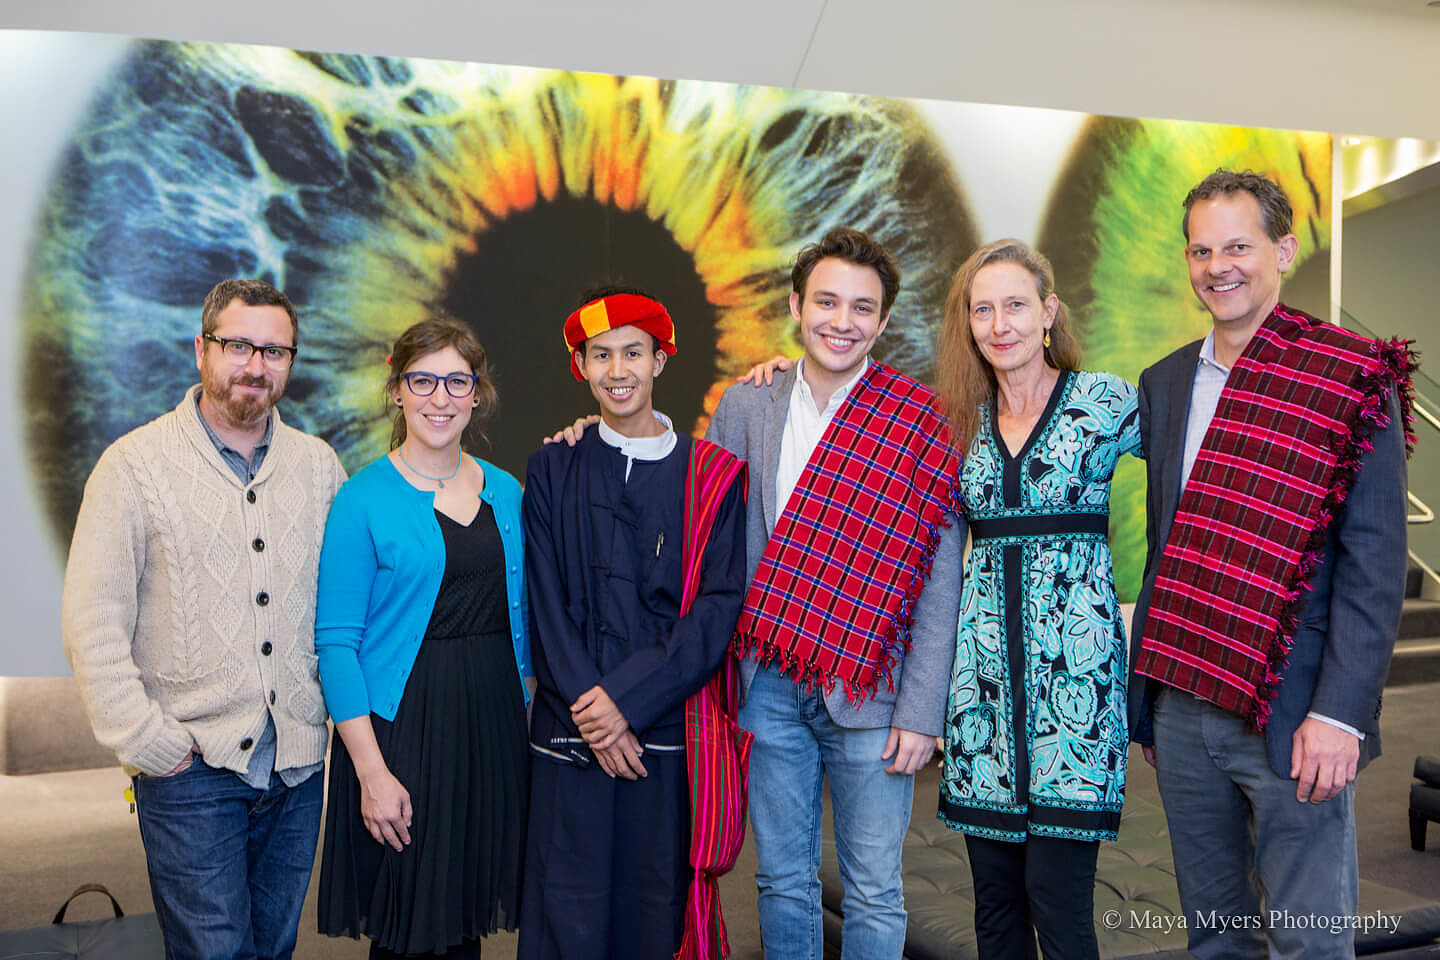 Mayim with Khit San and the filmmakers and panelists at the event. From left to right: Yosi Sergant, Mayim, Khun Khit San, Ben Proudfoot, Jeanne Hallacy and Johnny Symons.